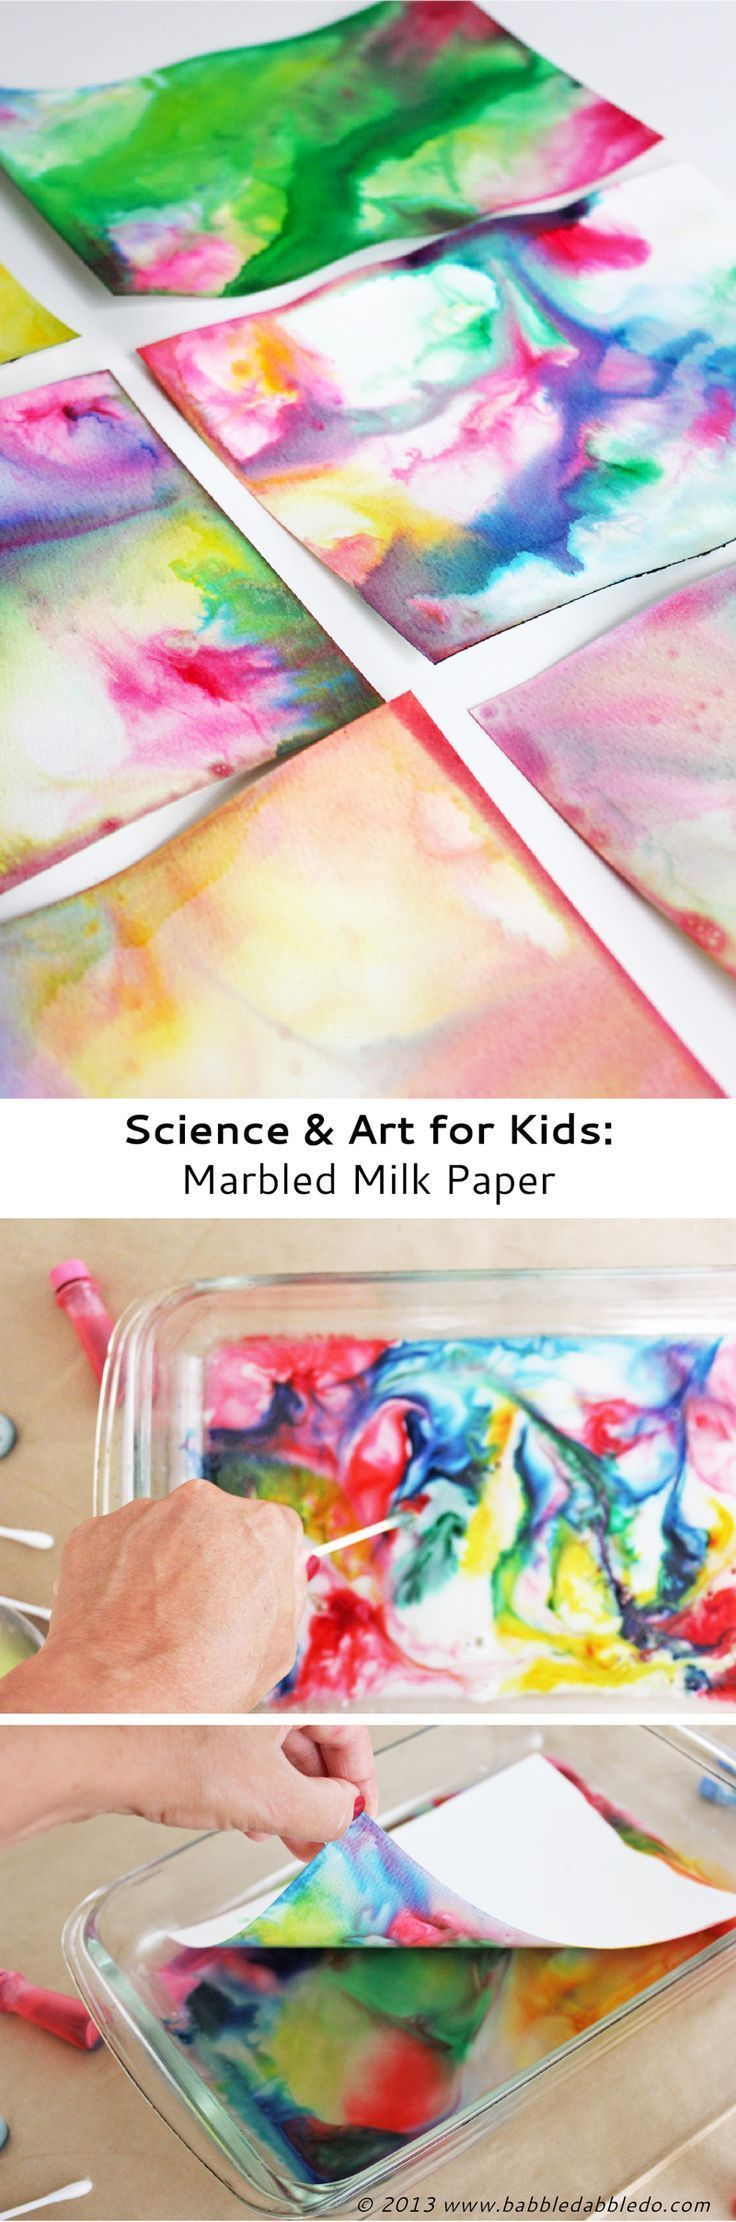 Learn how to make Marbled Milk Paper from the popular marbled milk science experiment.